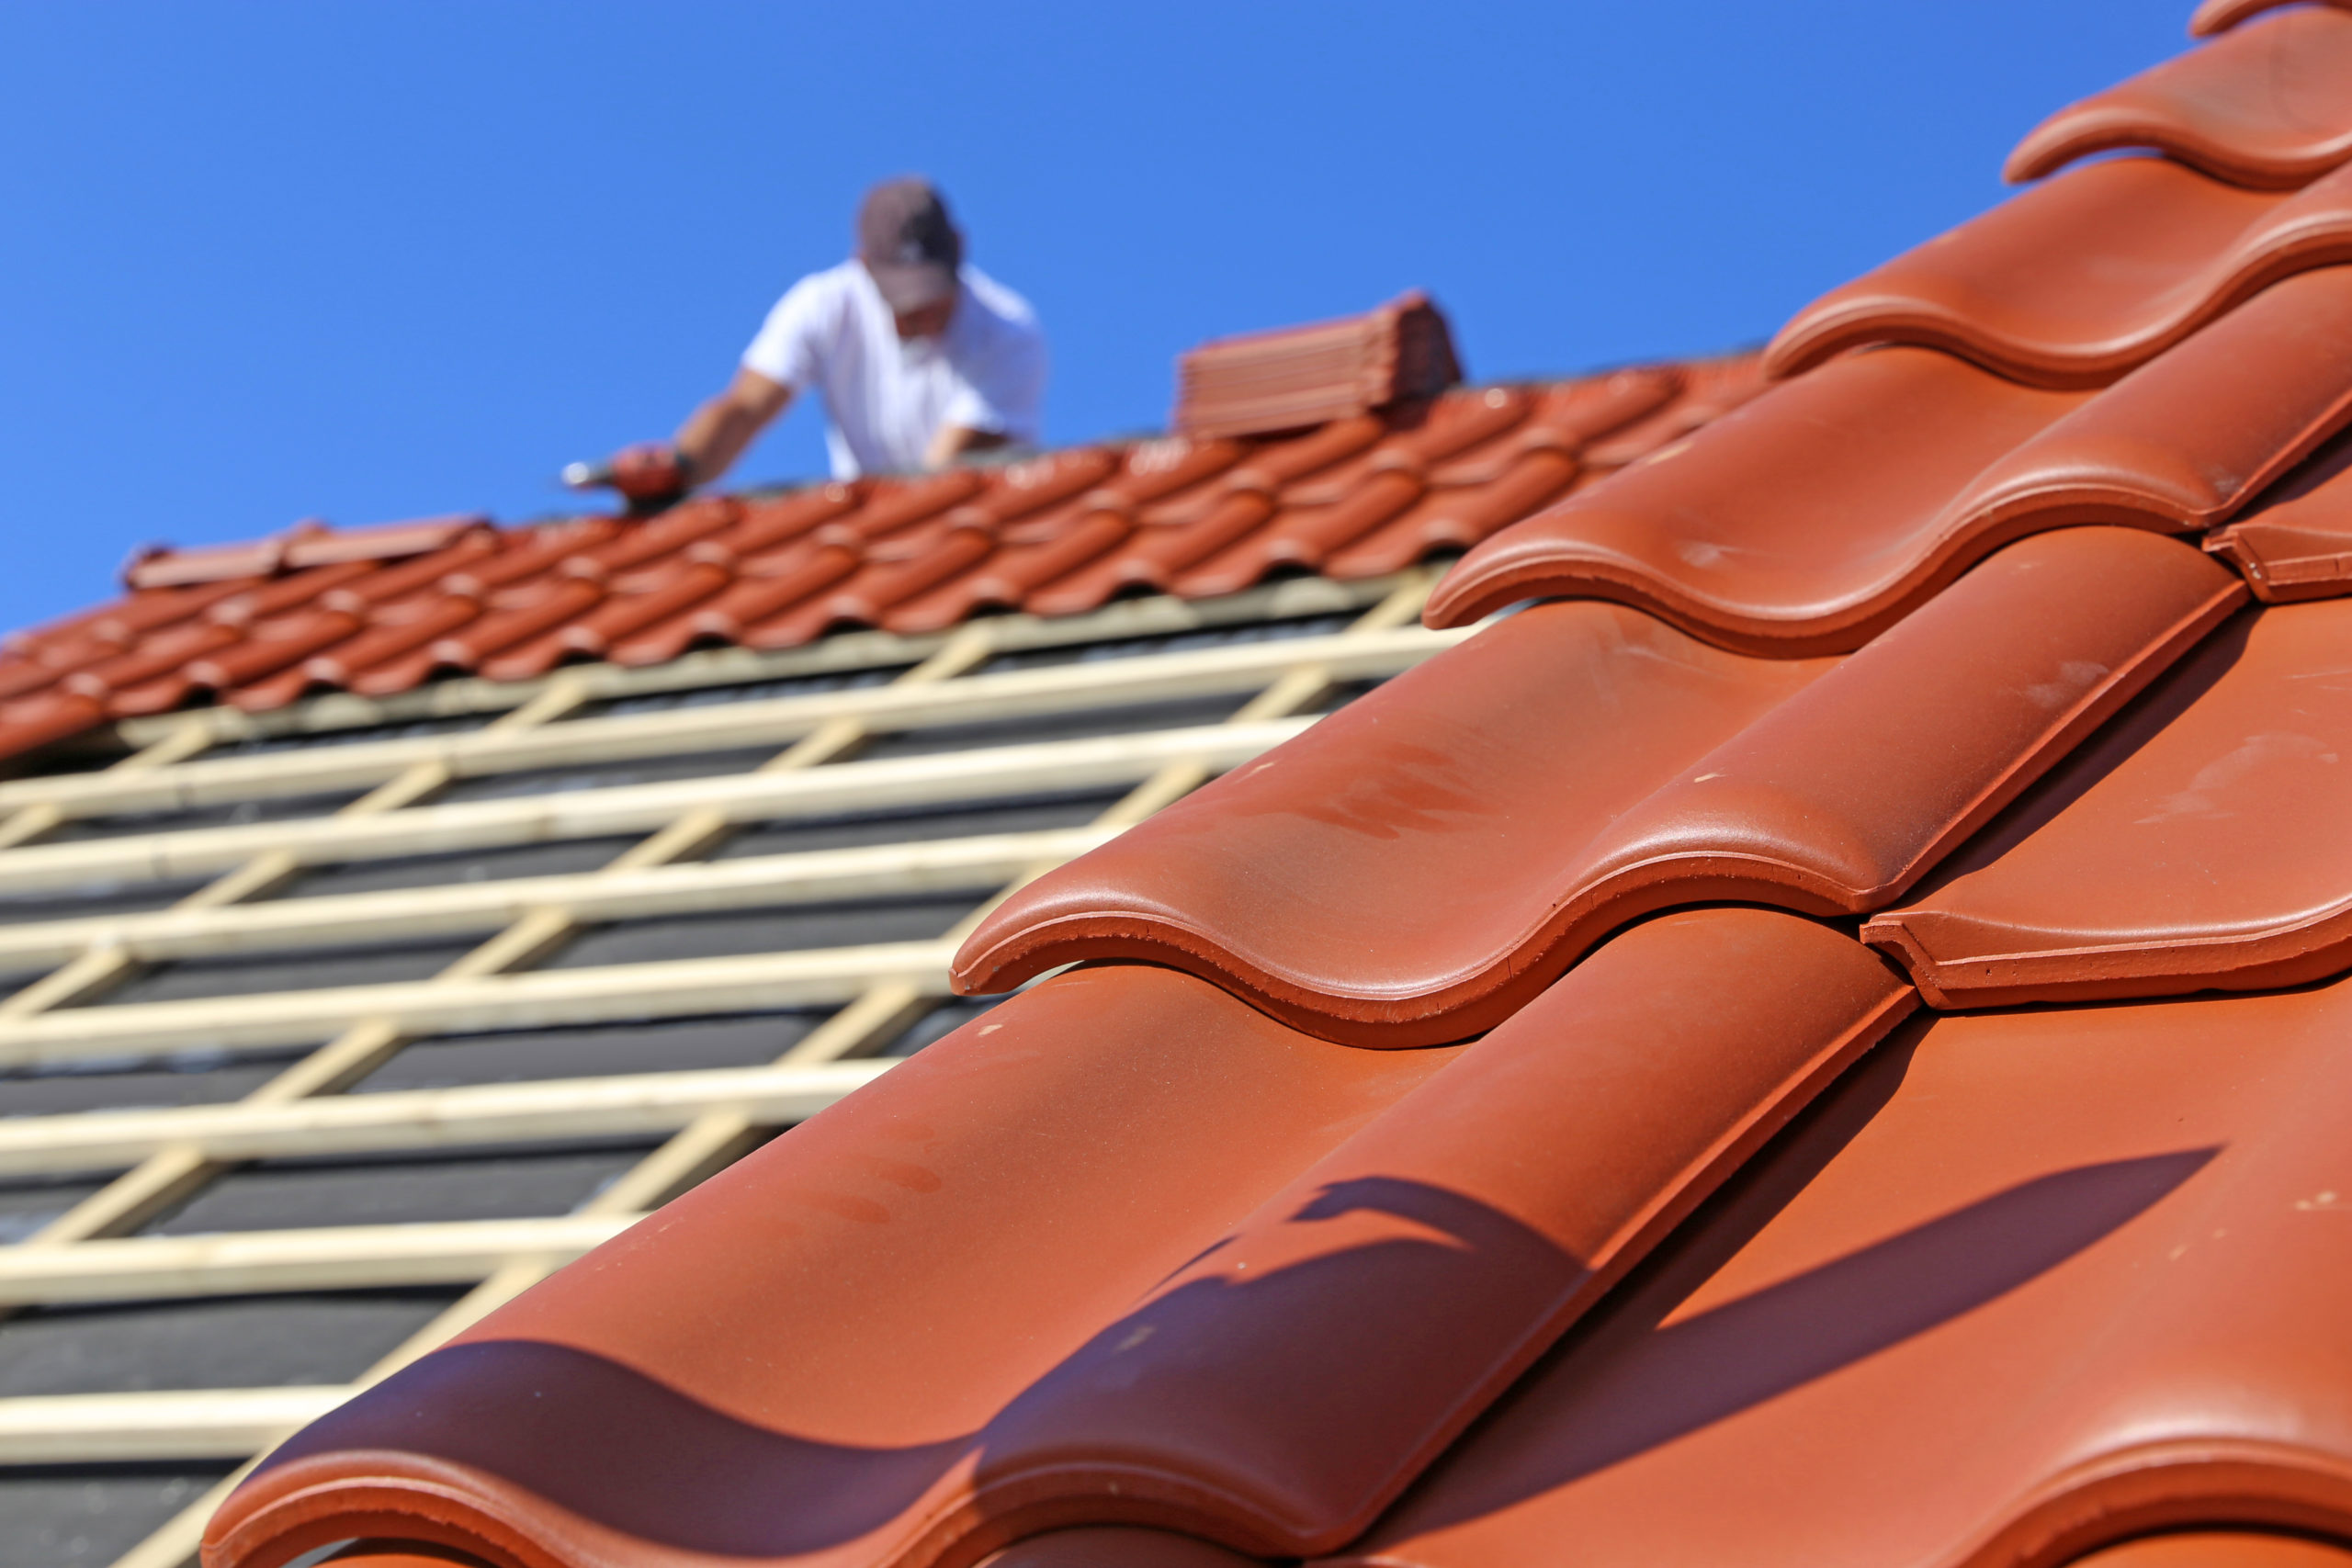 Roofing,Work,,New,Covering,Of,A,Tiled,Roof